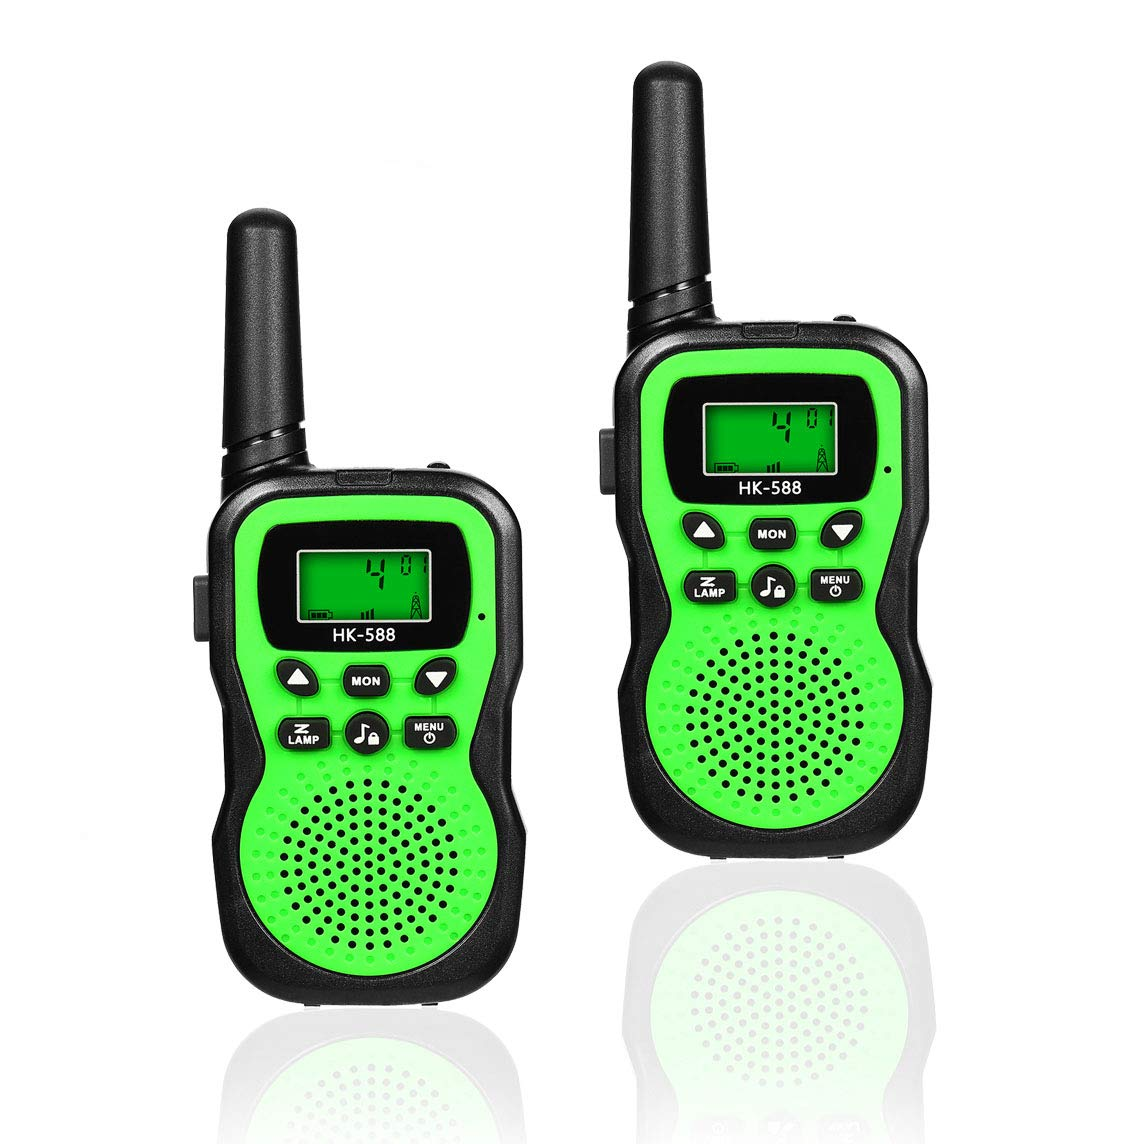 Best Gifts for Kid, JRD&BS WINL Toys Walkie Talkies for Kid,Fun Toys for 4-5 Year Old Boys,Kid Toys for 6-10 Year Old Travel Hunting,HK-588 1 Pair(Green)